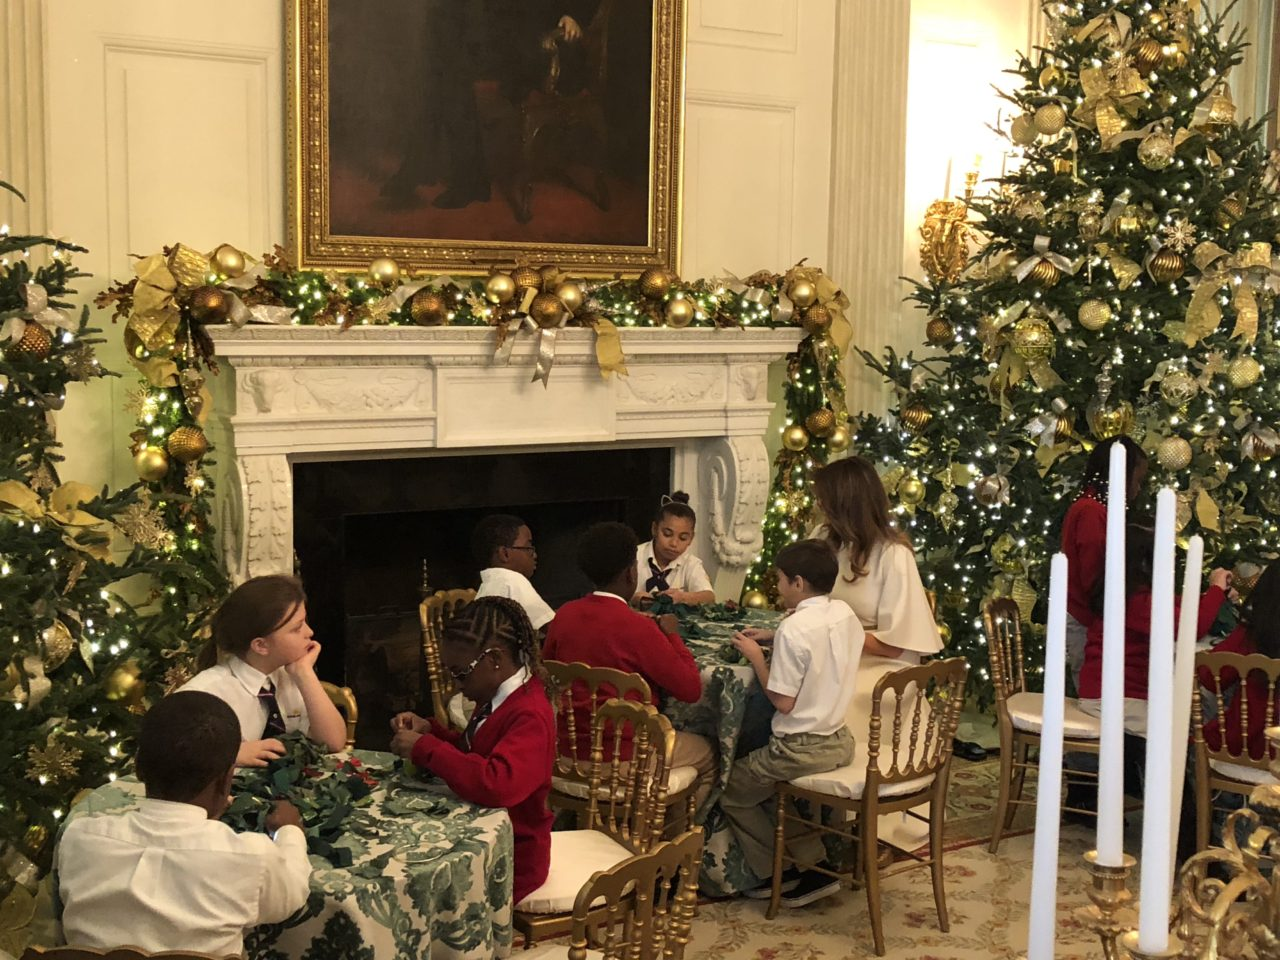 Christmas alive at white house as melania trump welcomes children first lady melania trump visits with children making christmas wreaths in the white house state dining room dzzzfo